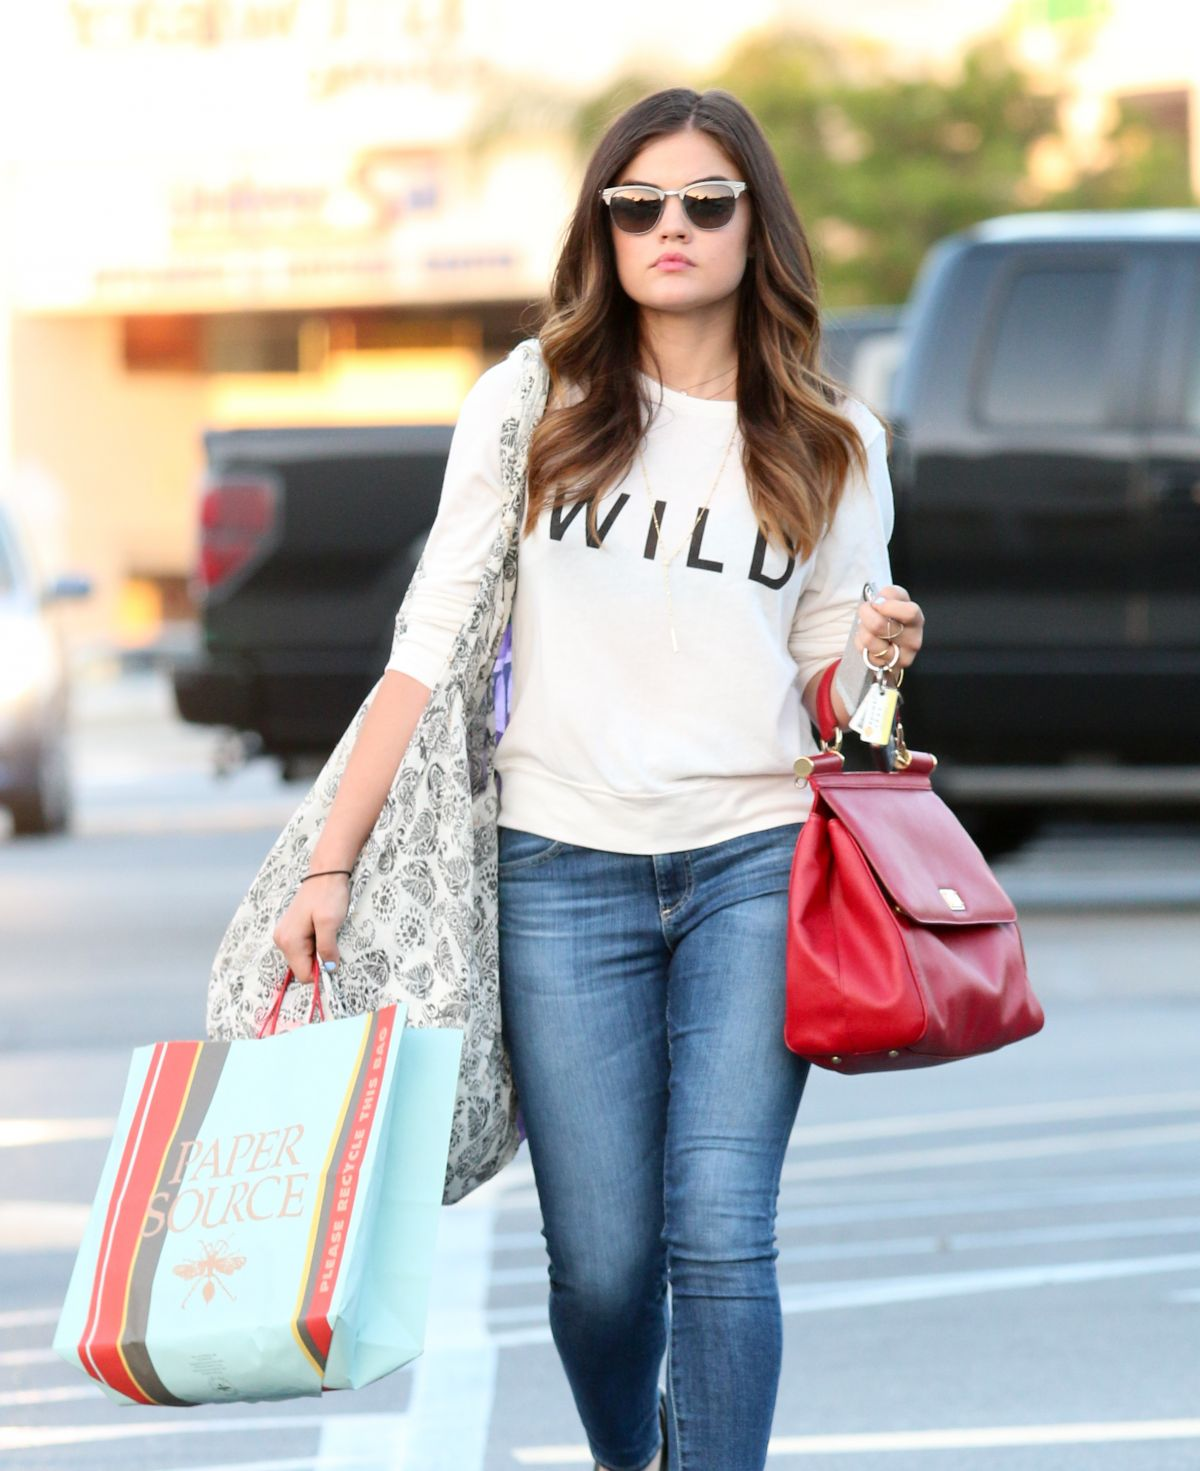 LUCY HALE in Jeans Out and About in Studio City